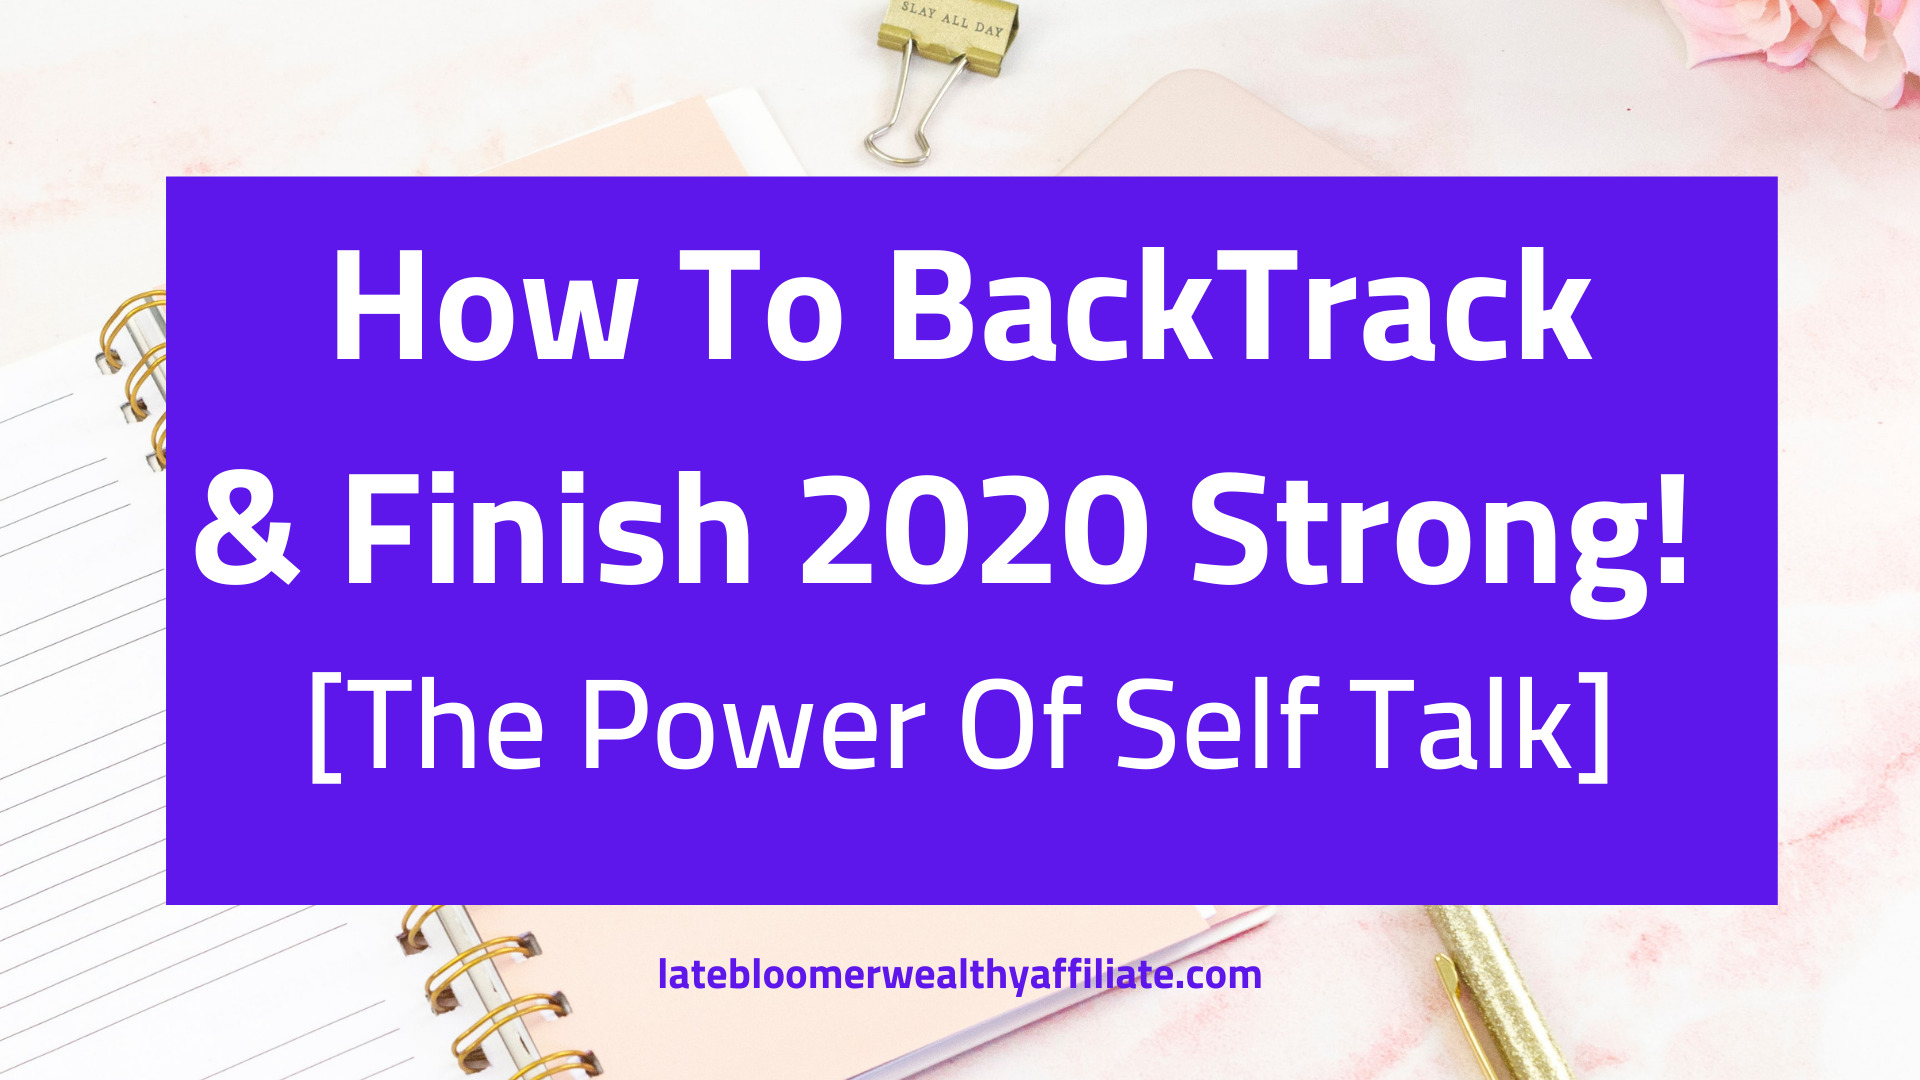 How To BackTrack & Finish 2020 Strong. Self Talk